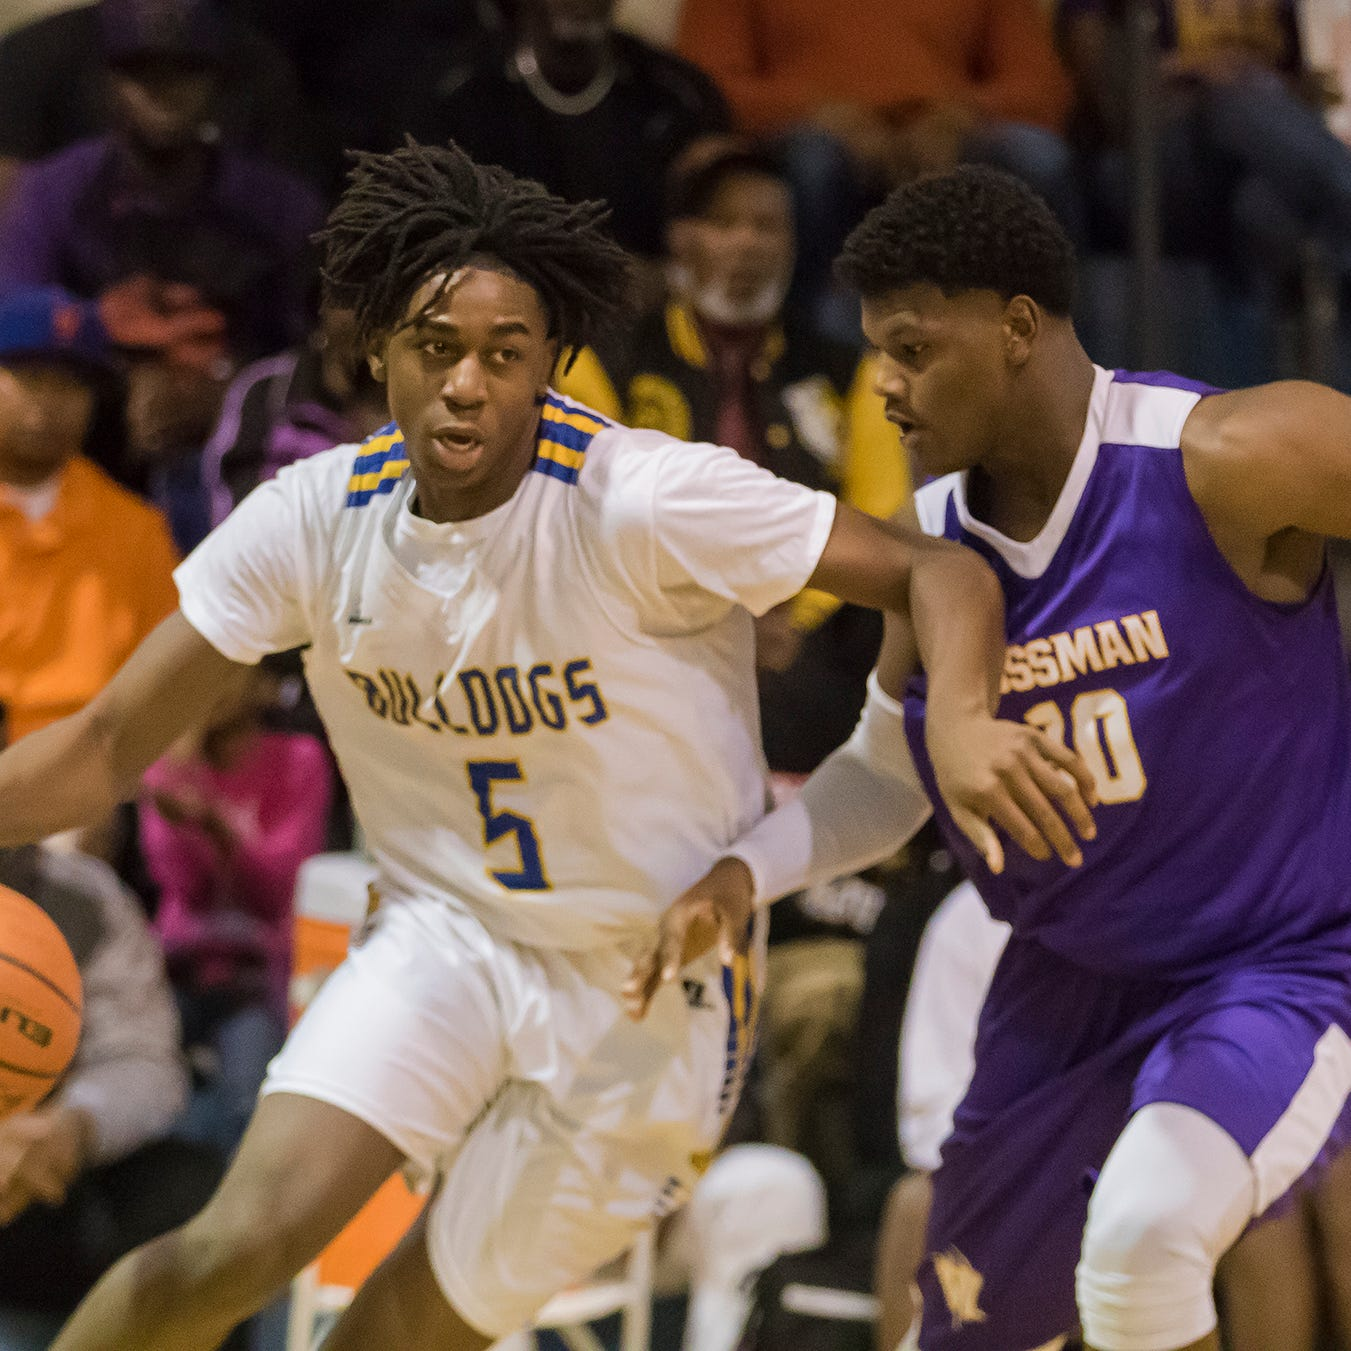 Wossman turns up pressure, wins at rival Carroll